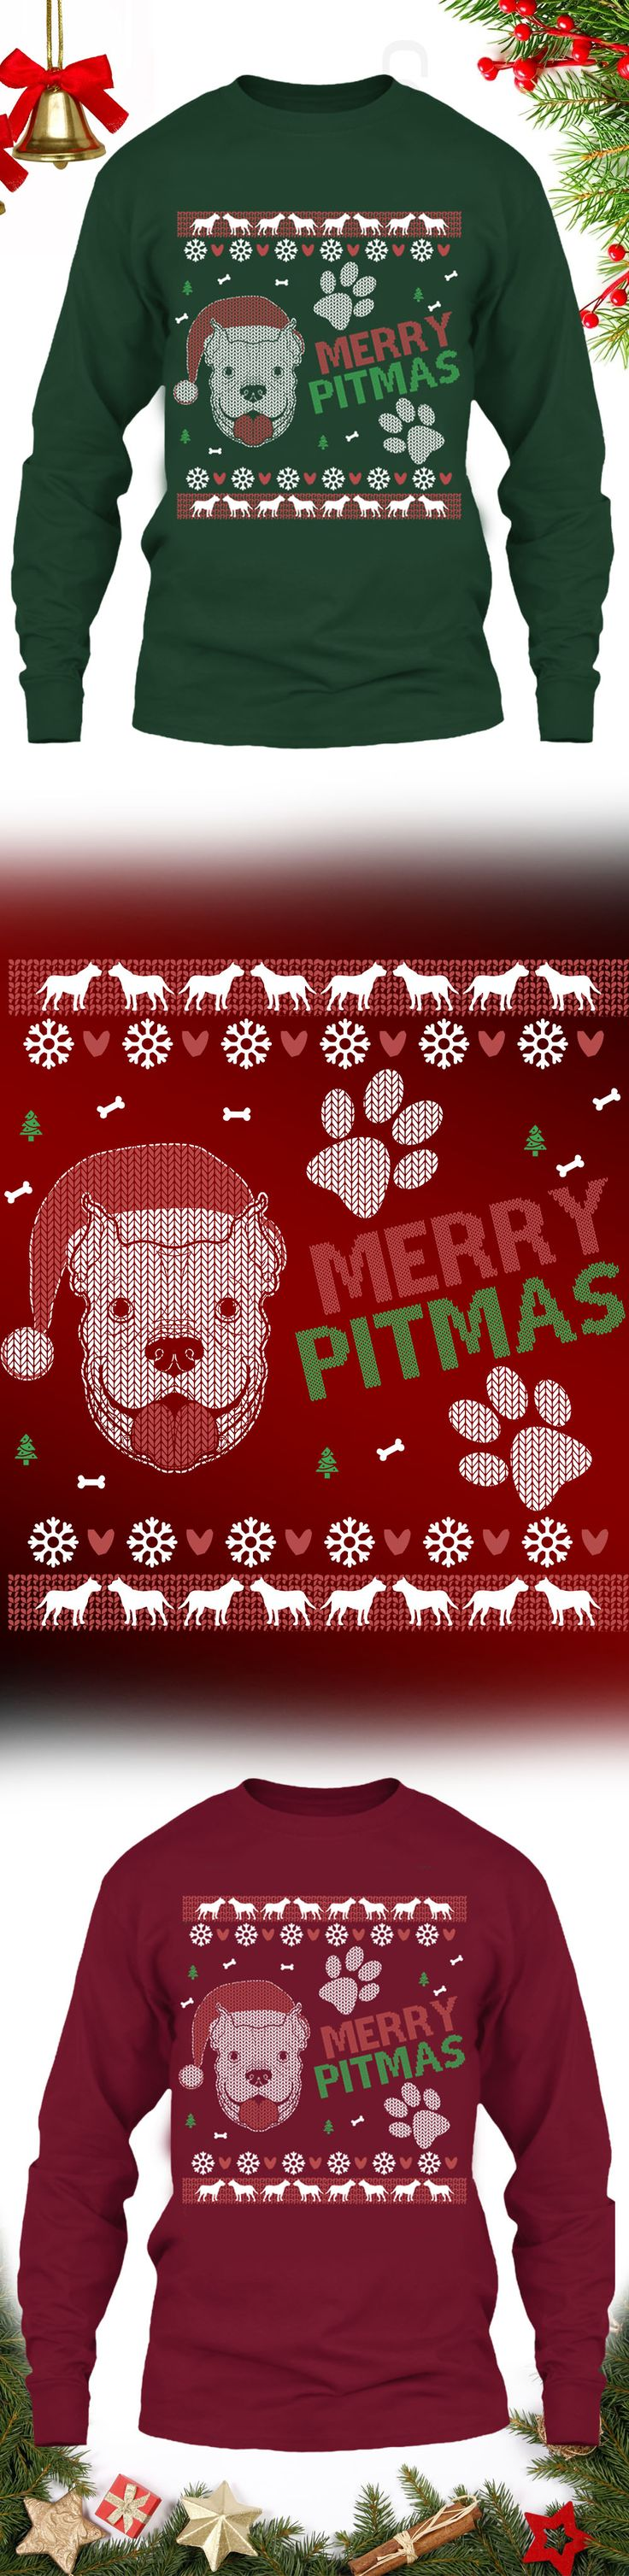 Merry Pitmas - Get this limited edition ugly Christmas Sweater just in time for the holidays! Only 2 days left for FREE SHIPPING, click to buy now!